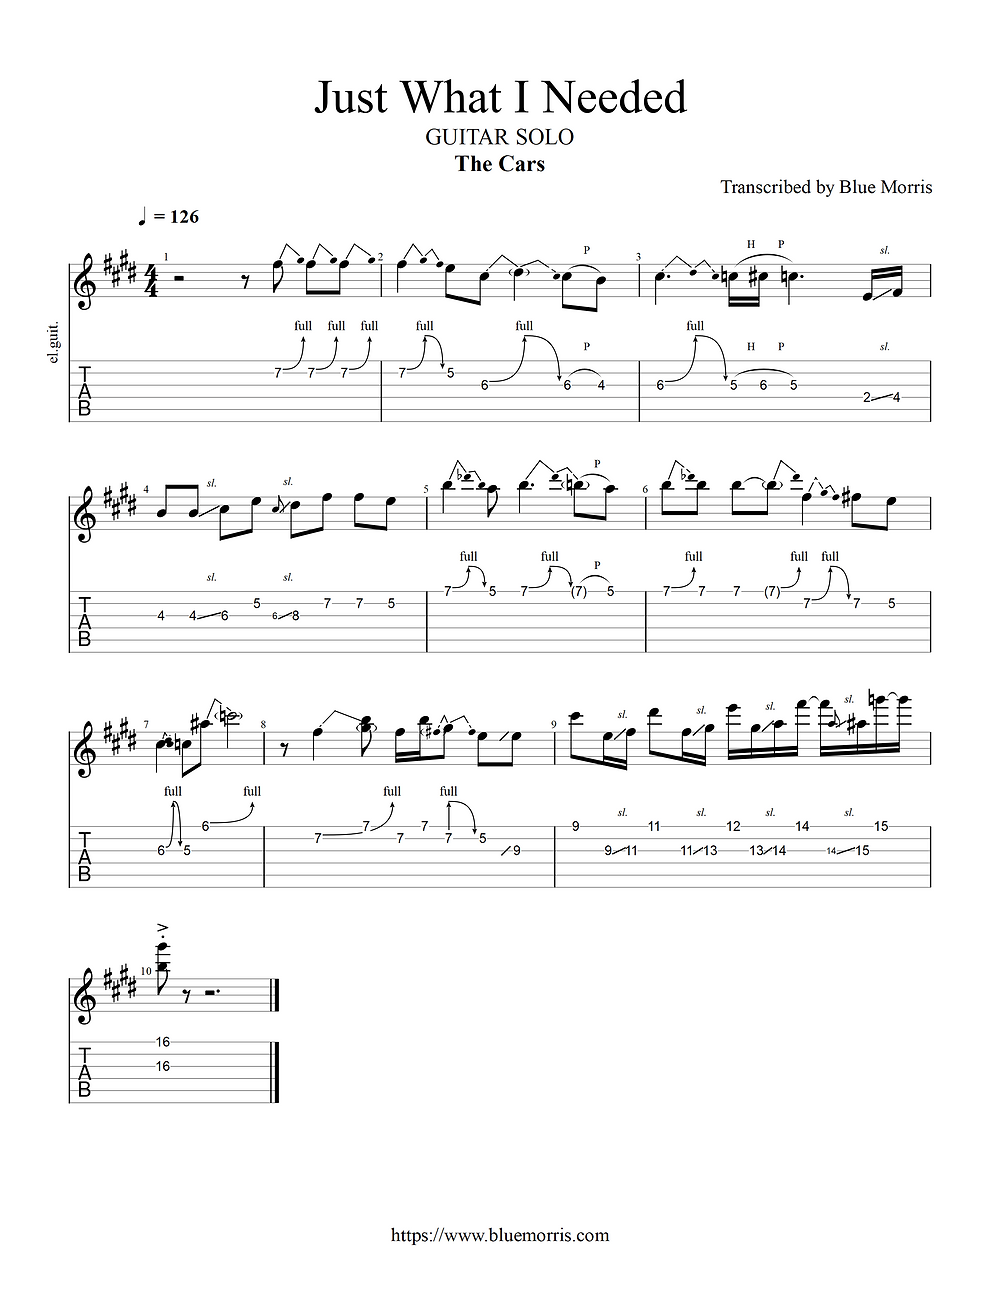 The Cars Just What I Needed guitar solo tab